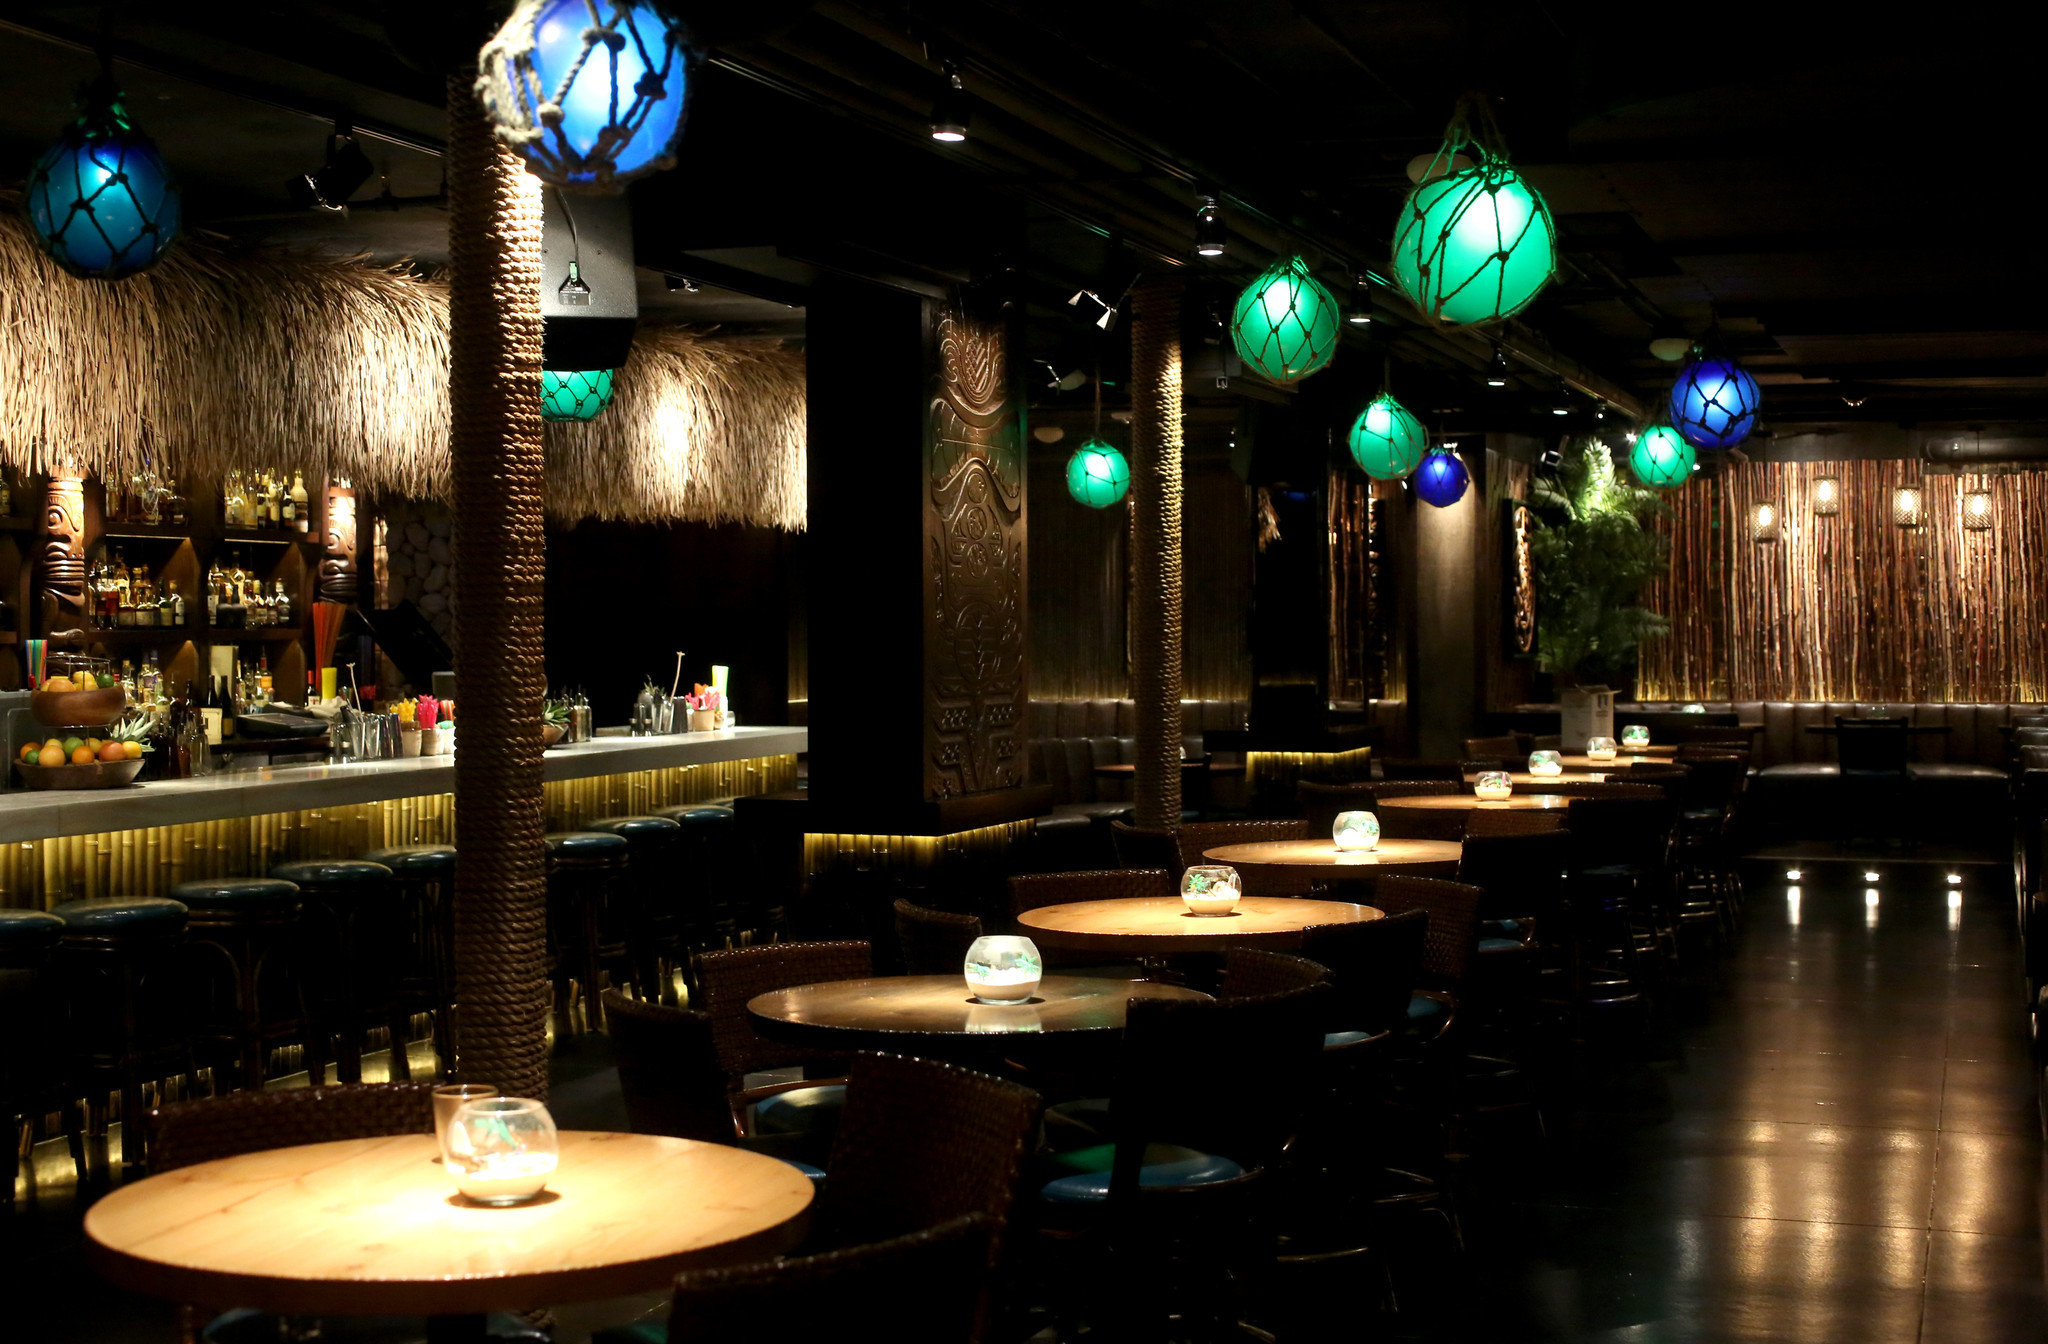 http://www.trbimg.com/img-543bf998/turbine/chi-aviary-three-dots-dash-named-among-worlds-50-best-bars-20141013